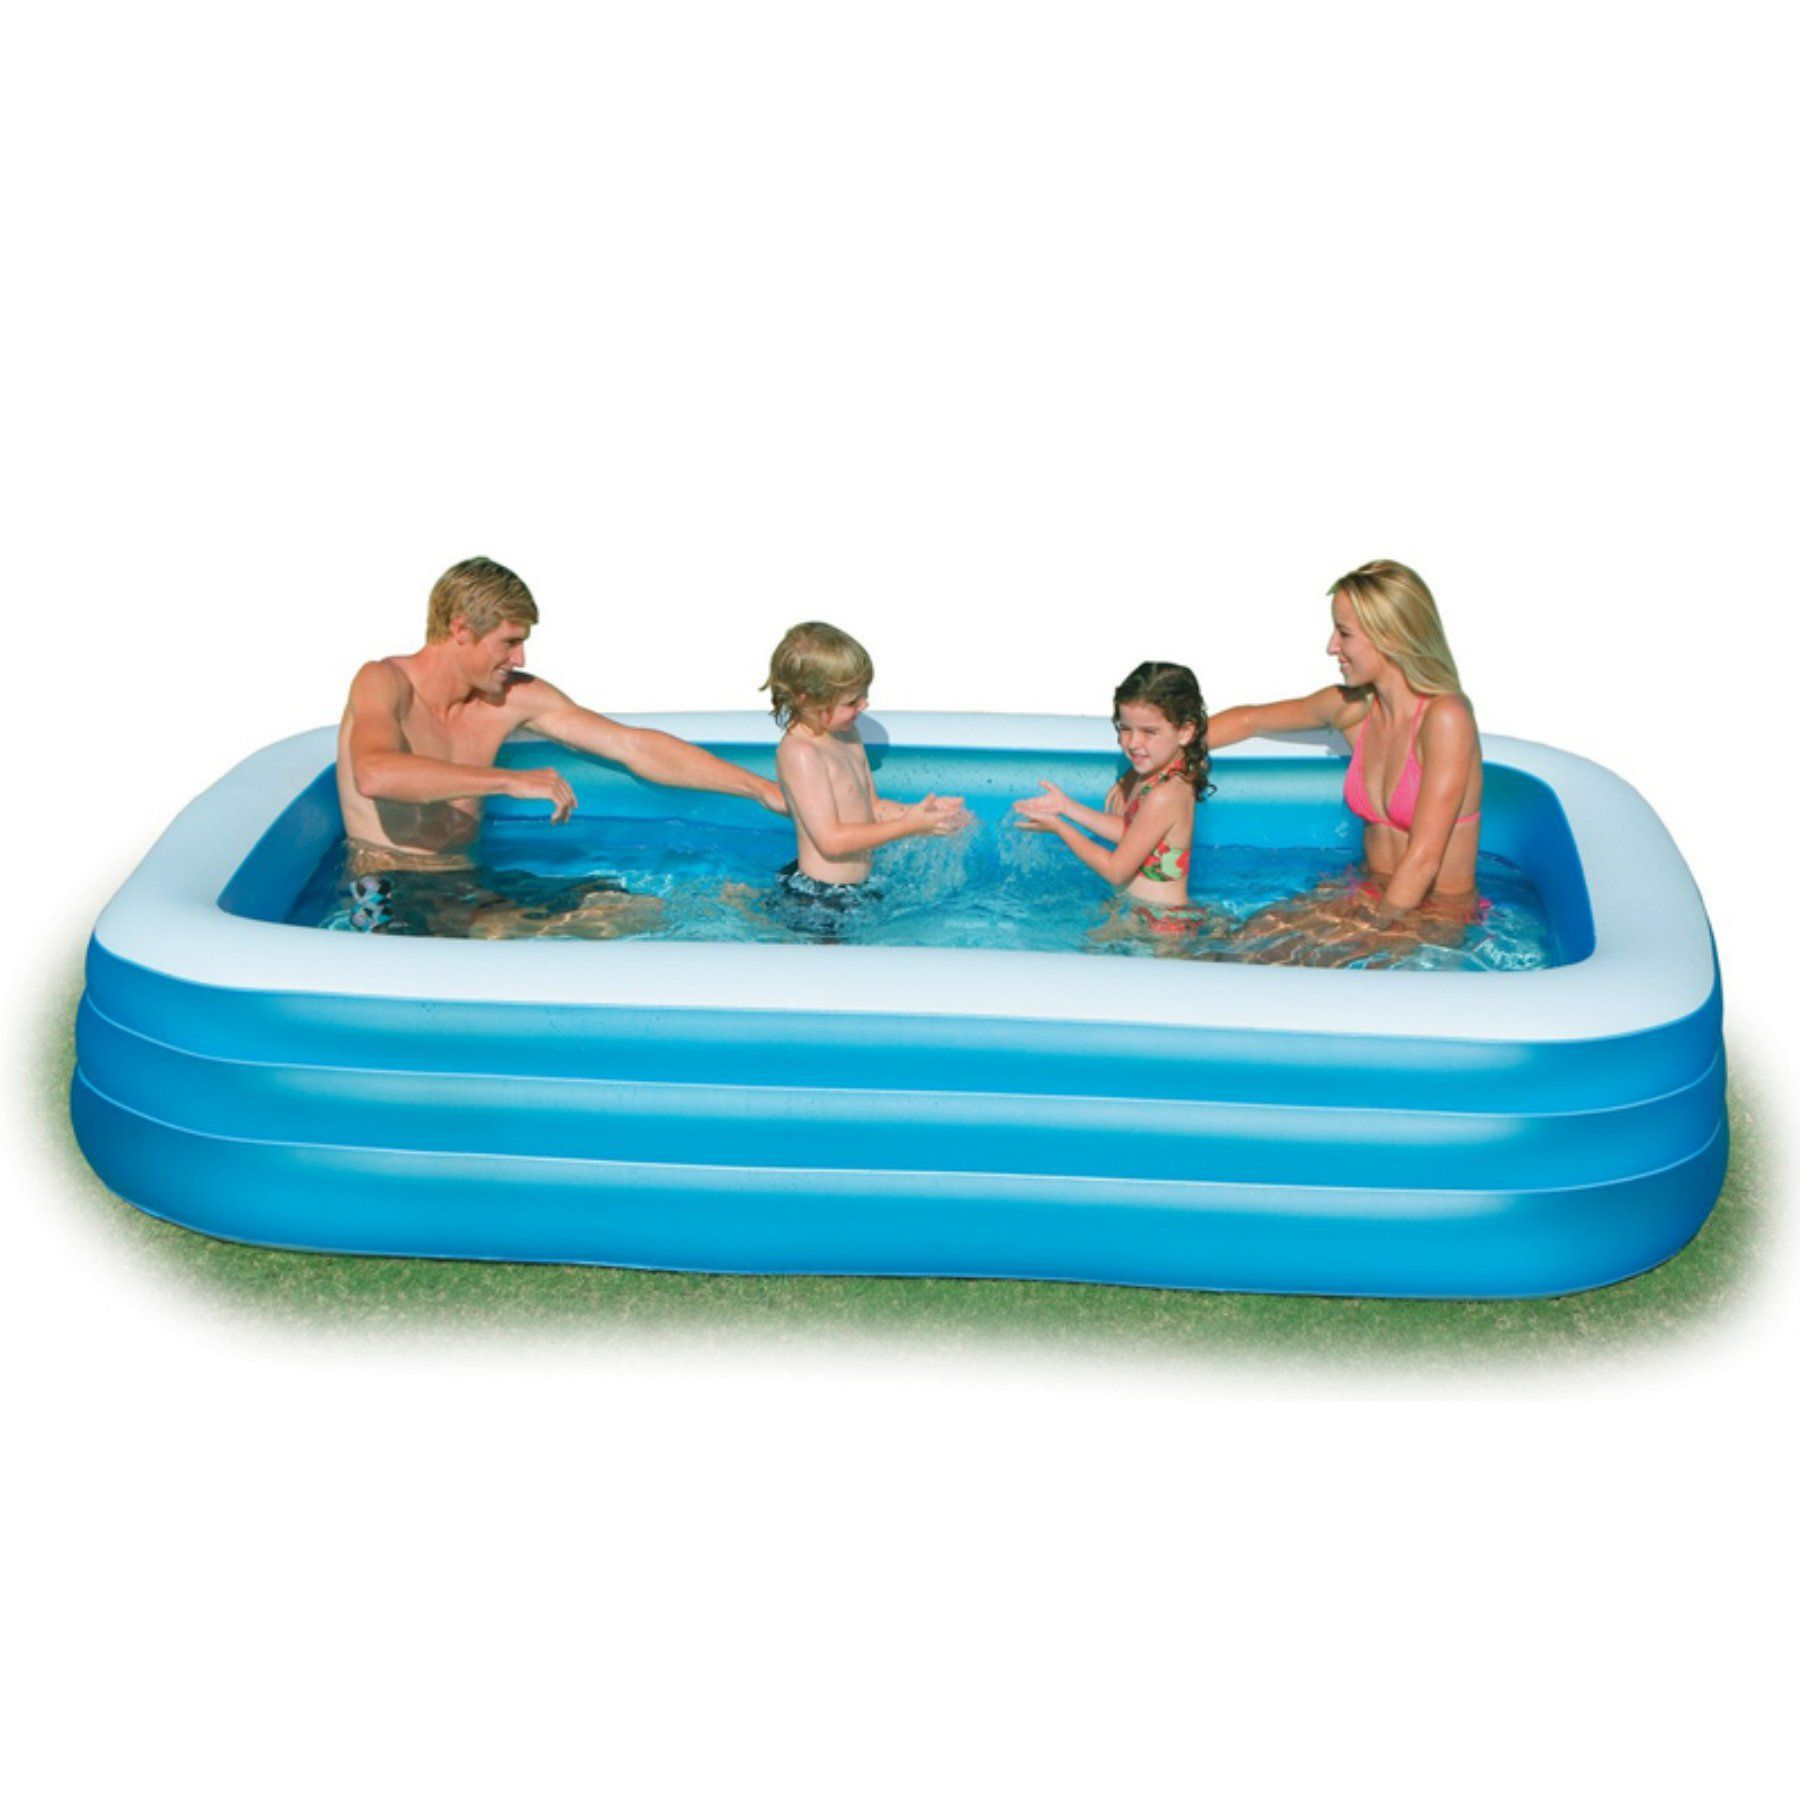 Pool Mit Pumpe Günstig Kaufen Intex Swim Center Family Pool 120 In Products Pinterest